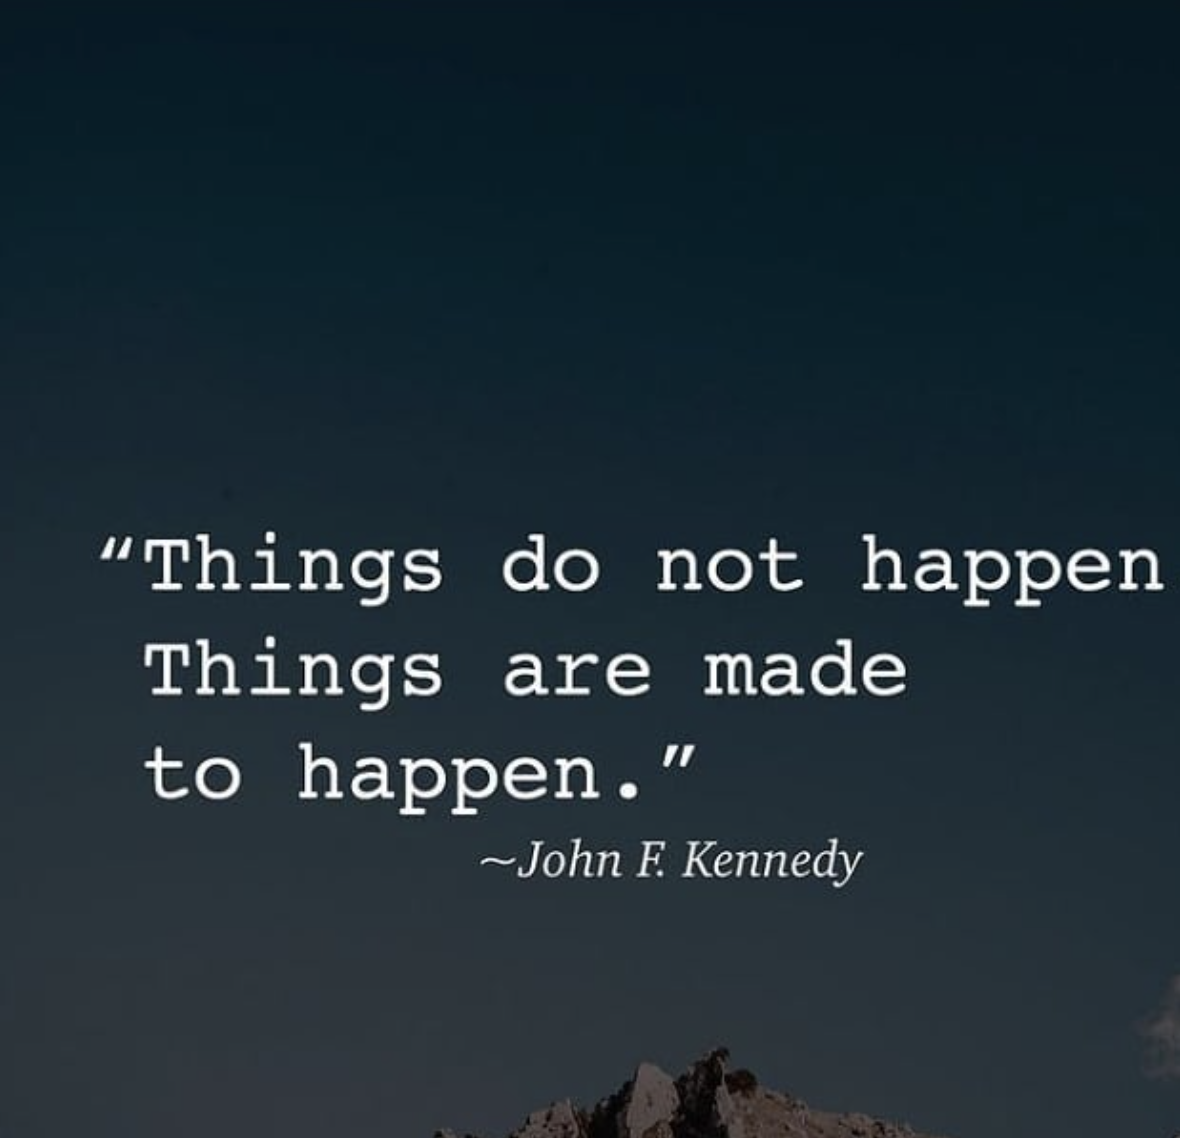 [Image] Things do not happen. Things are made to happen.